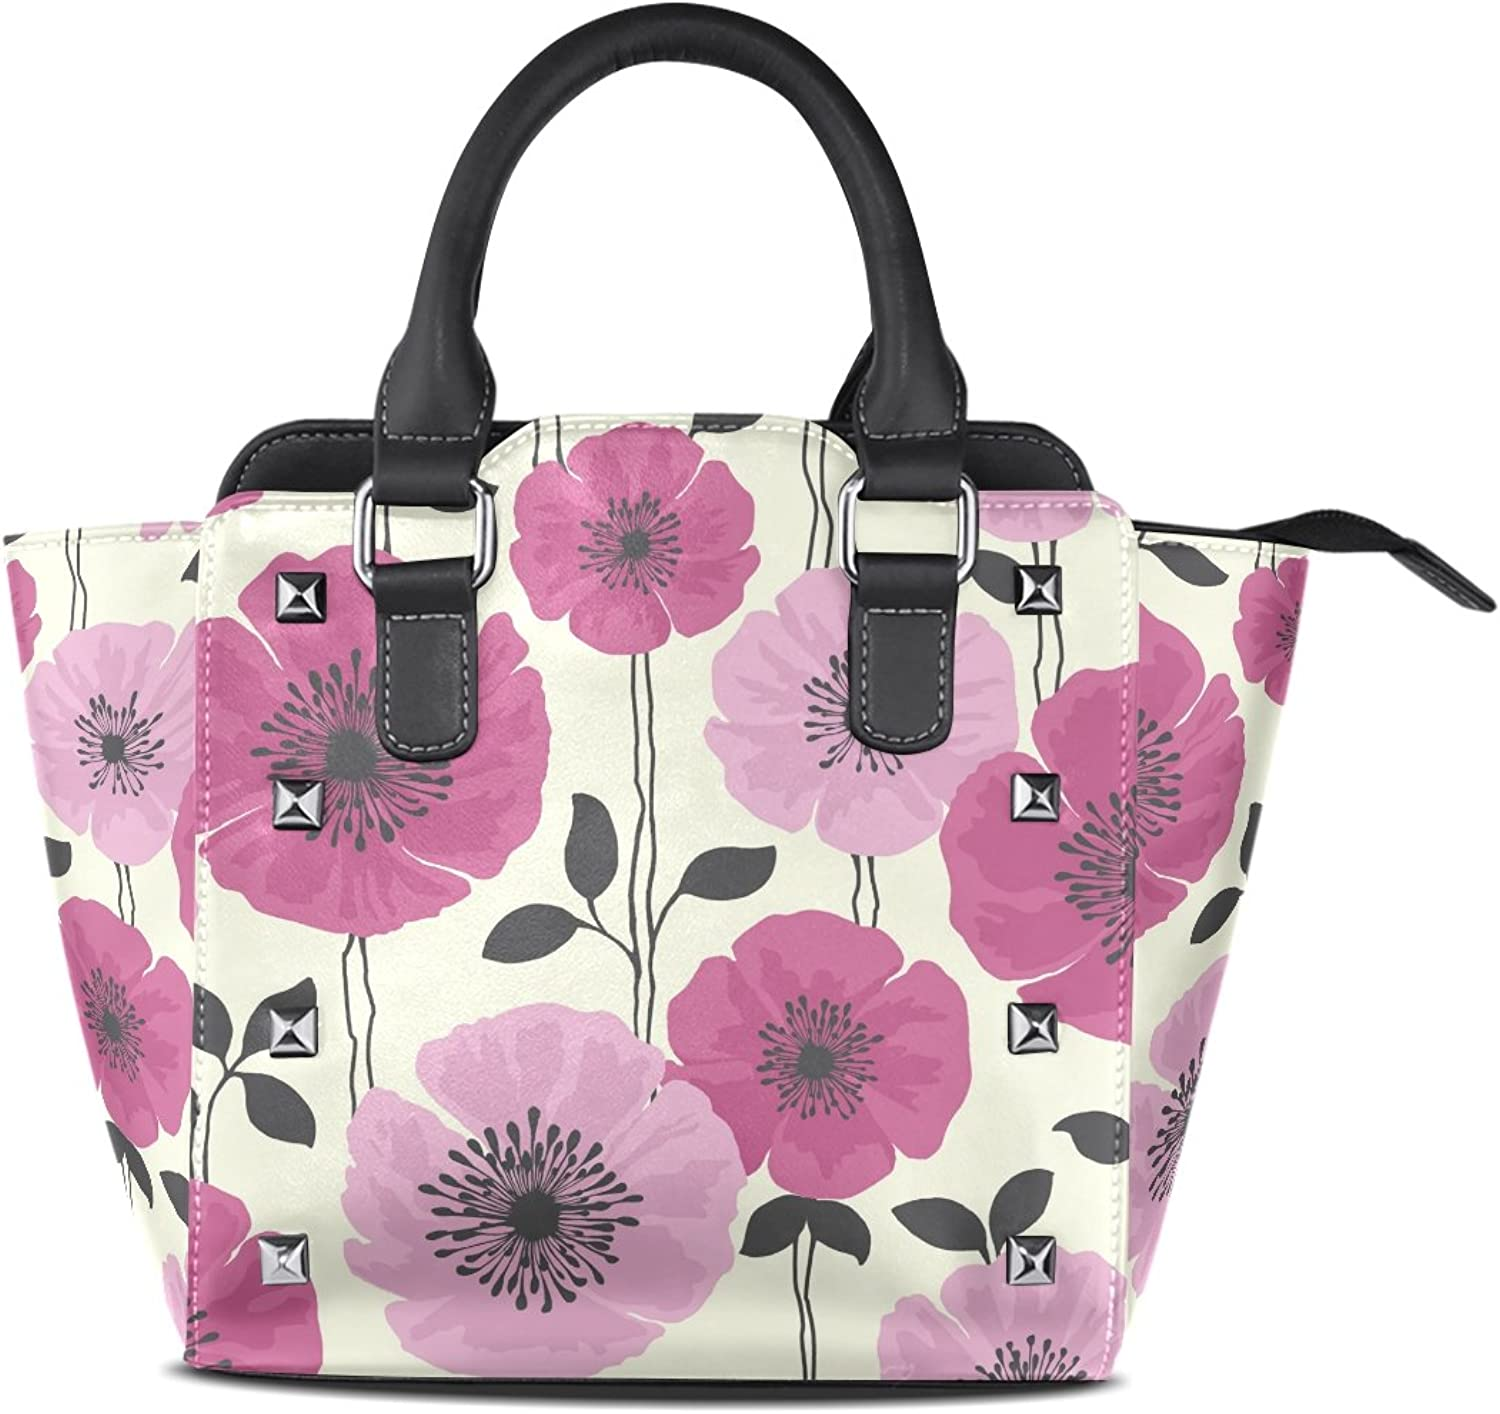 Sunlome Pink Purple Flower Print Women's Leather Tote Shoulder Bags Handbags